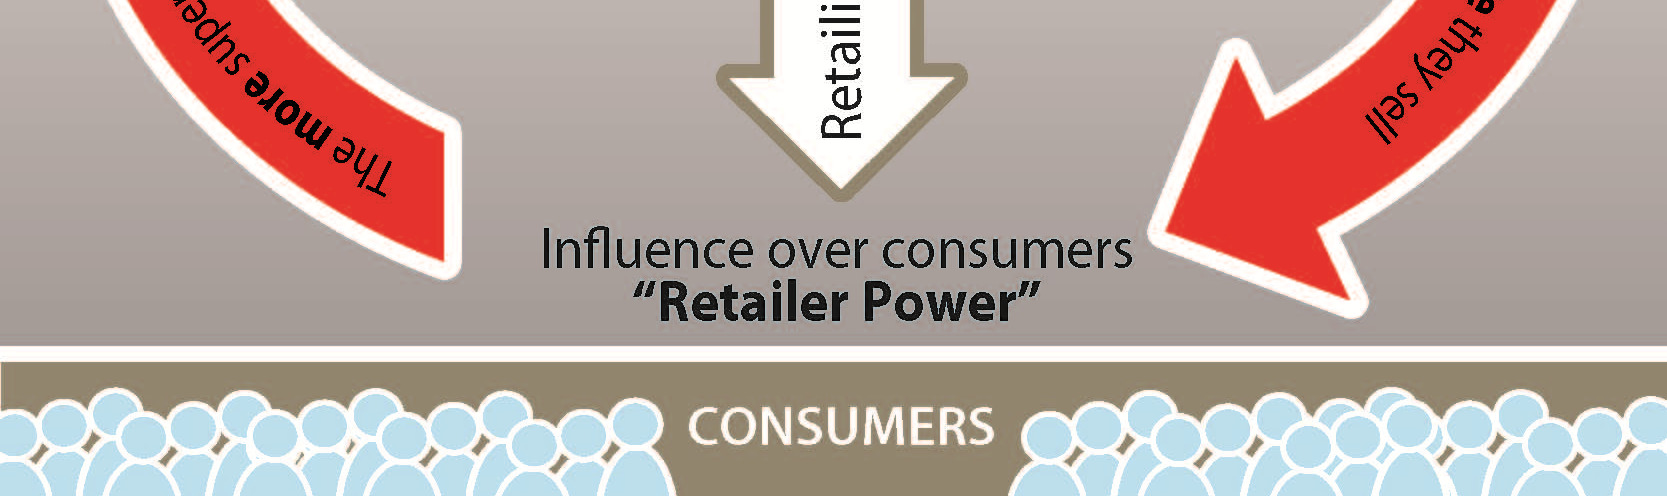 Except through supermarkets, brand owners large or small have only limited access to end consumers.